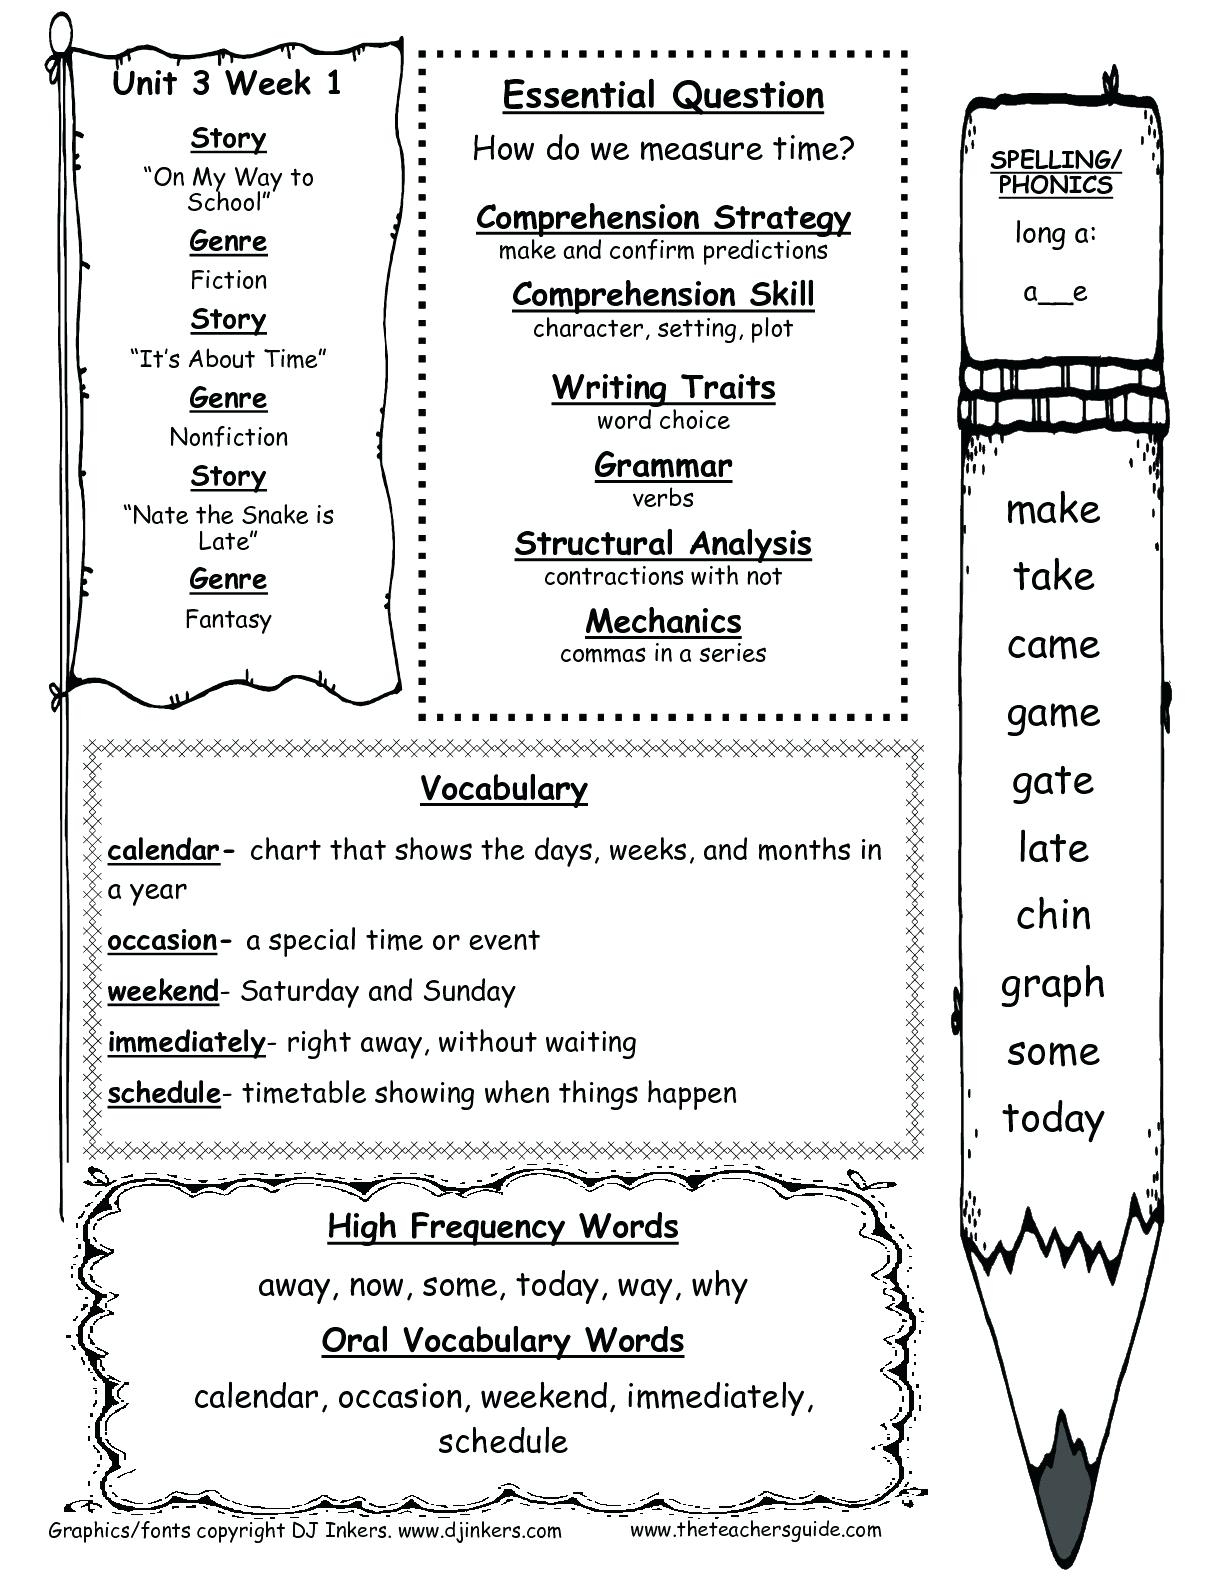 Worksheets For 1St Graders Reading First Grade Wonders Unit Three - Free Printable Worksheets For 1St Grade